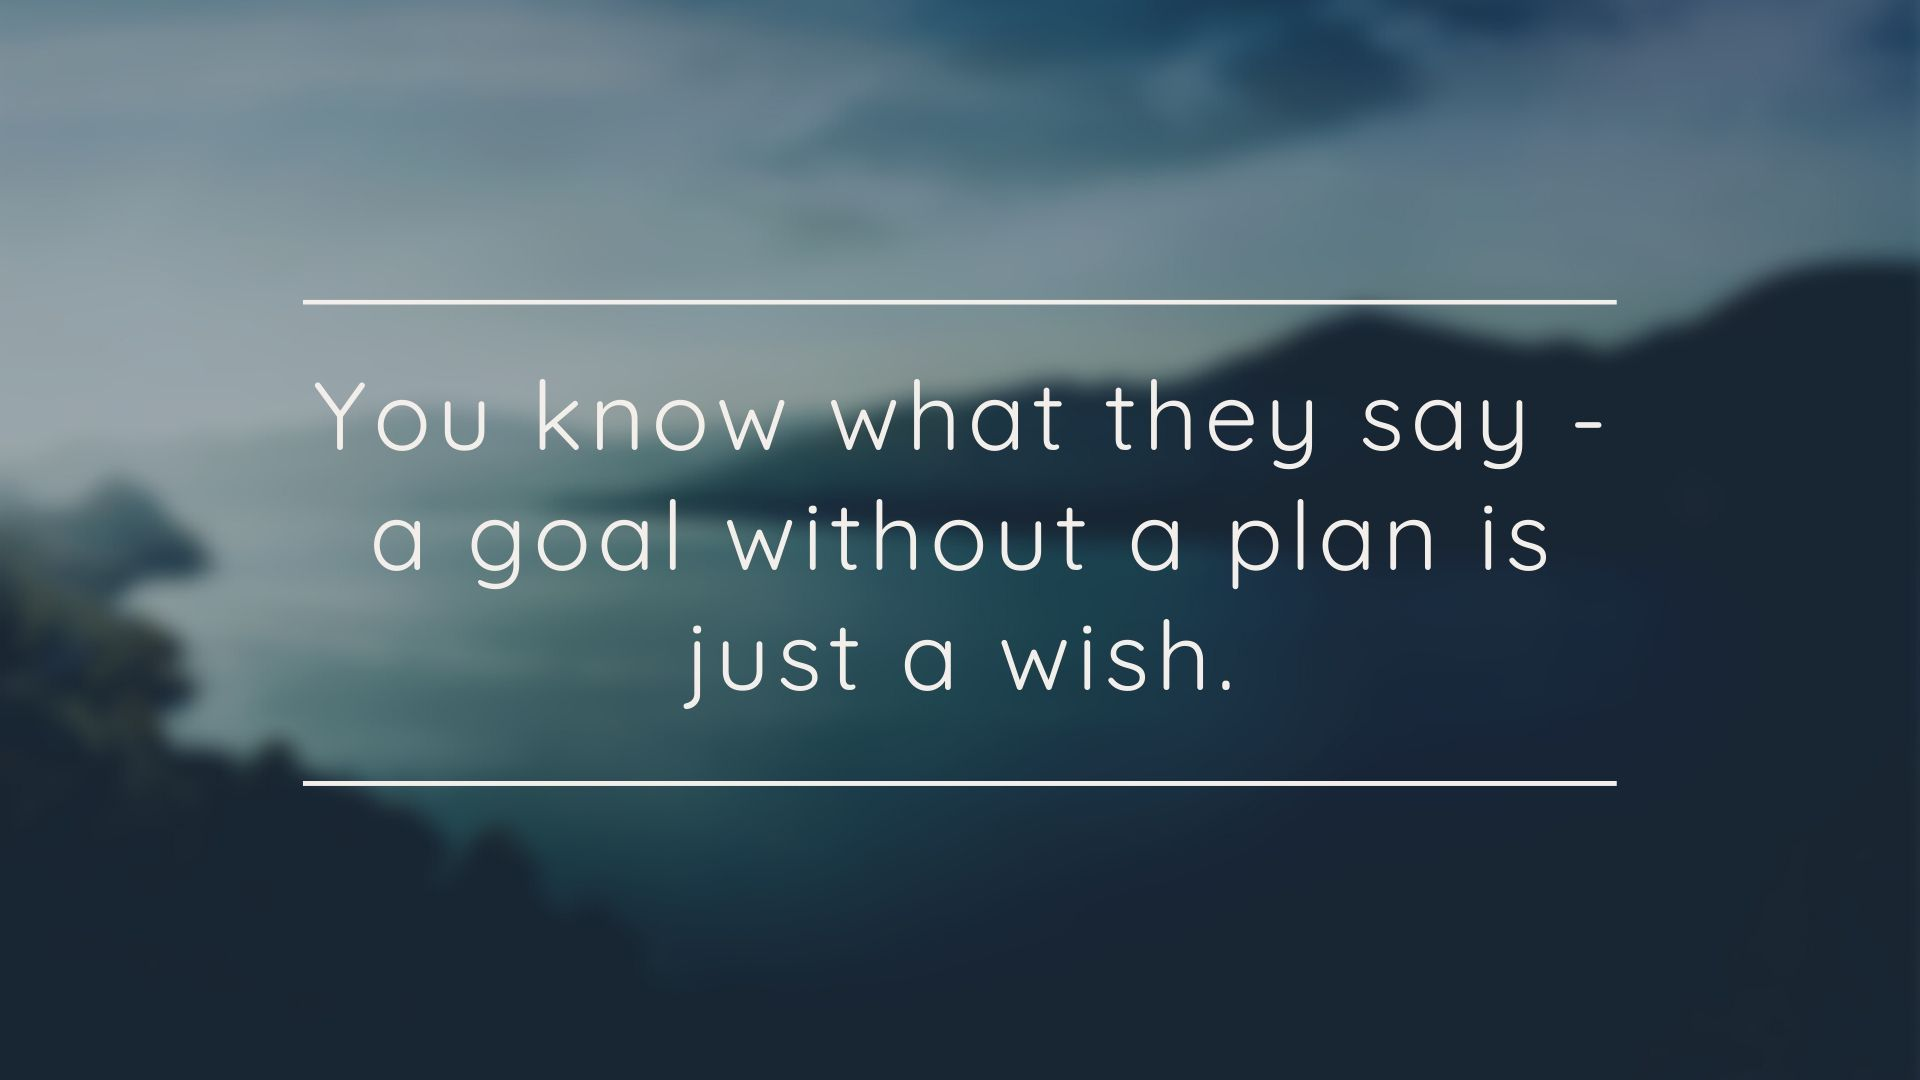 image quote goal without plan is wish